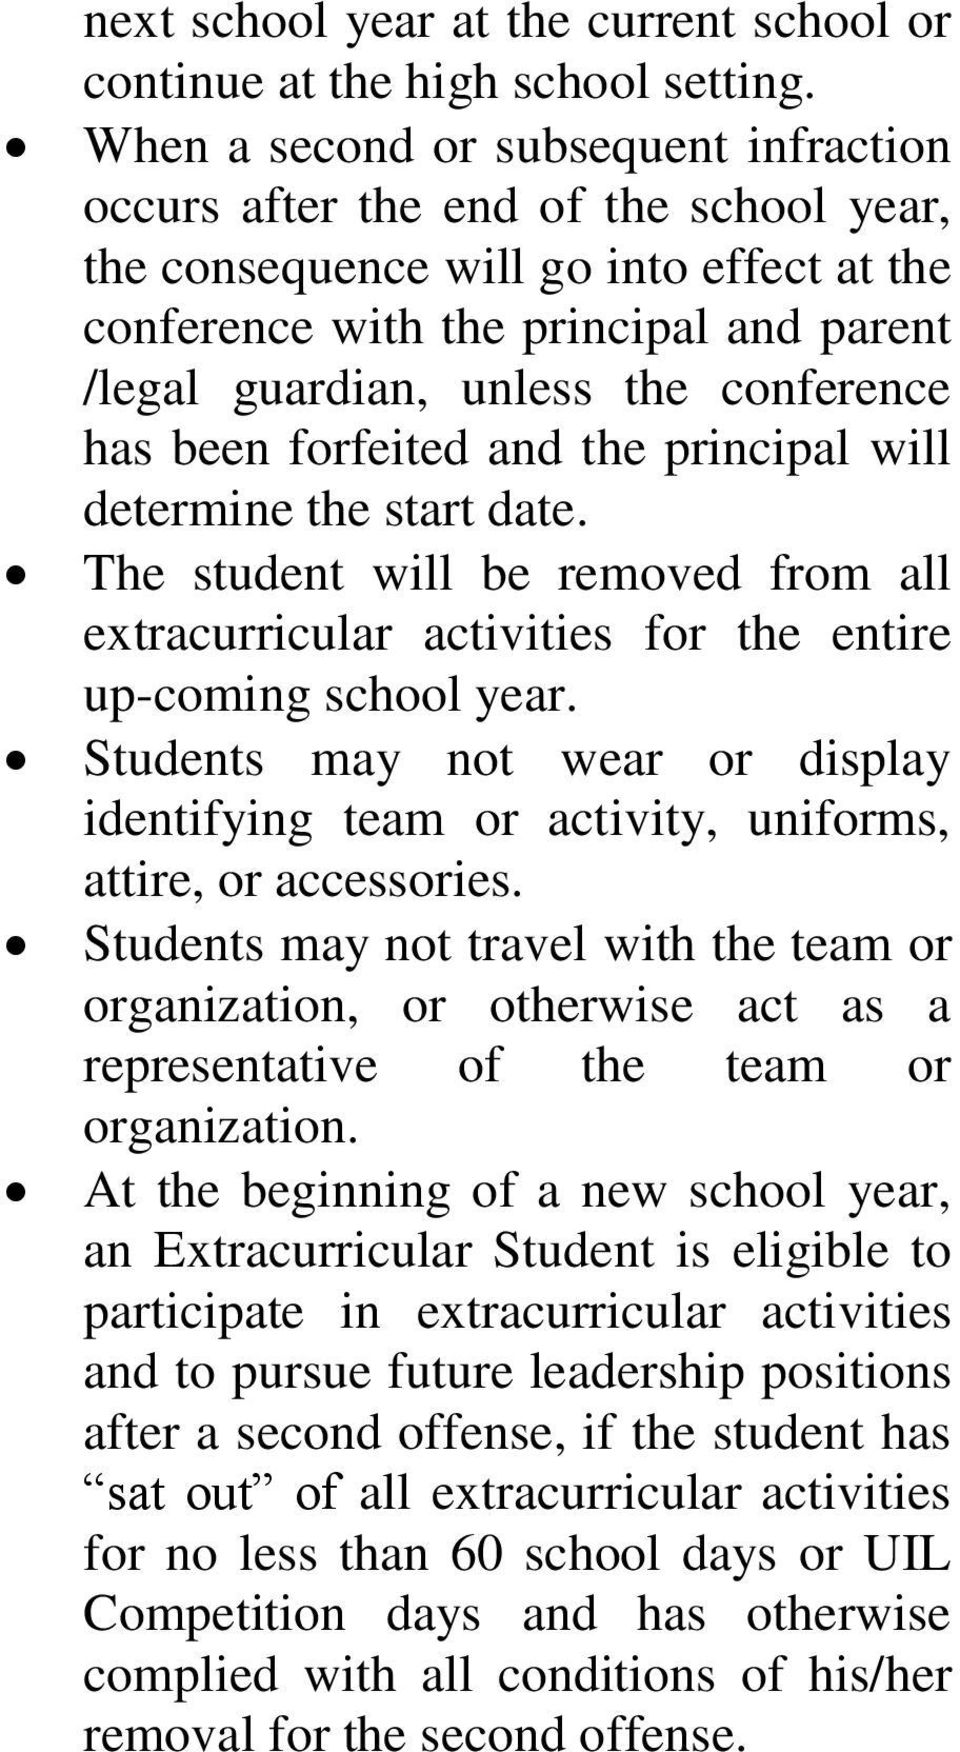 conference has been forfeited and the principal will determine the start date. The student will be removed from all extracurricular activities for the entire up-coming school year.